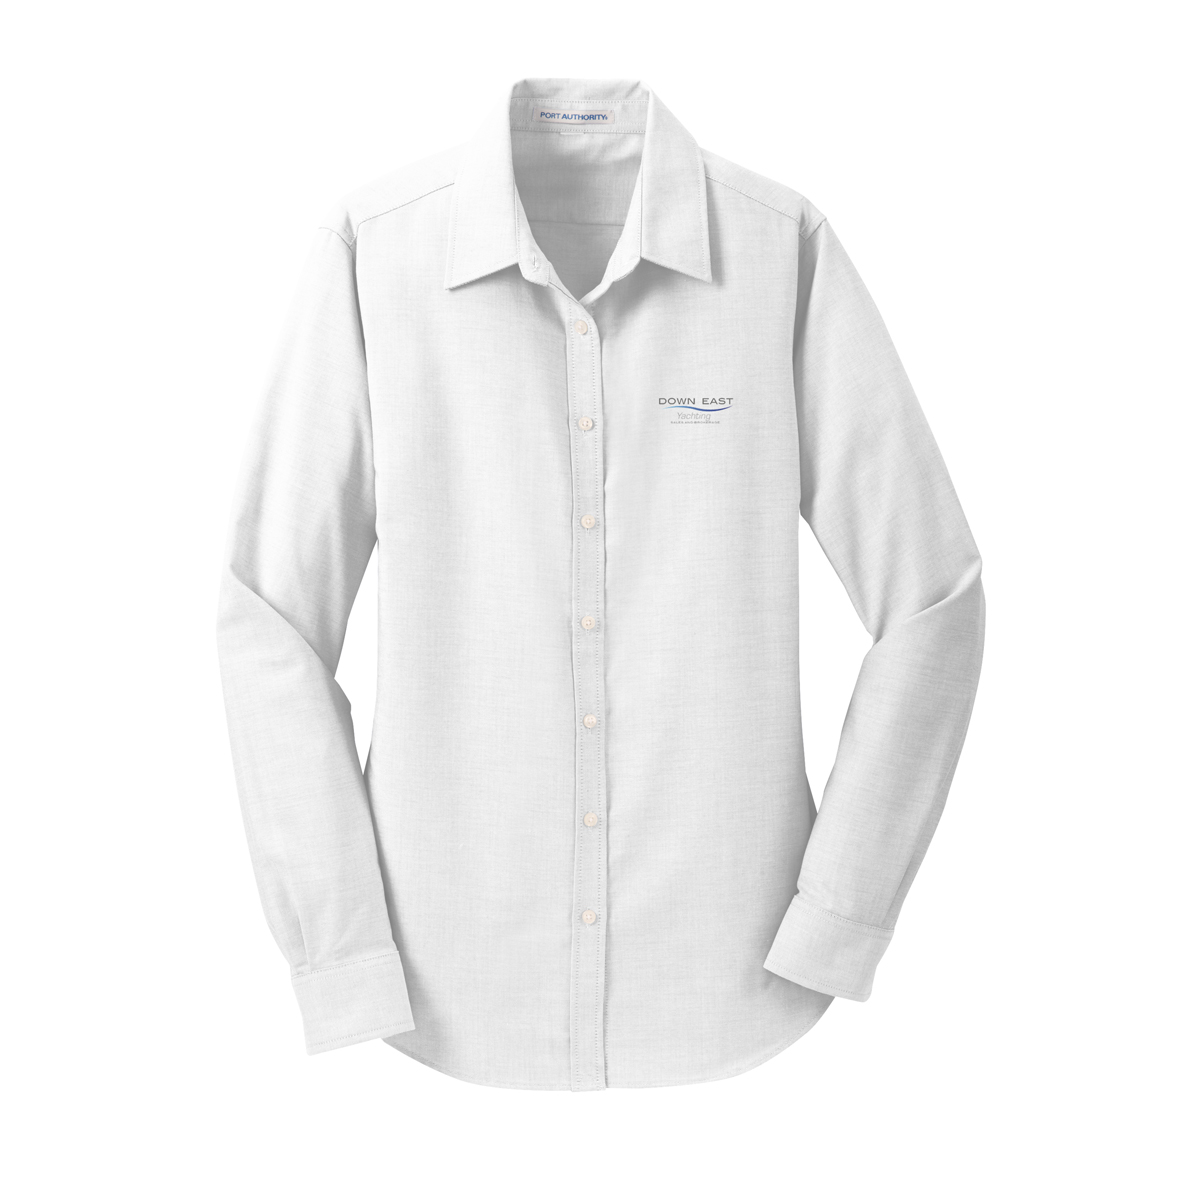 DOWN EAST YACHTING - W'S OXFORD SHIRT